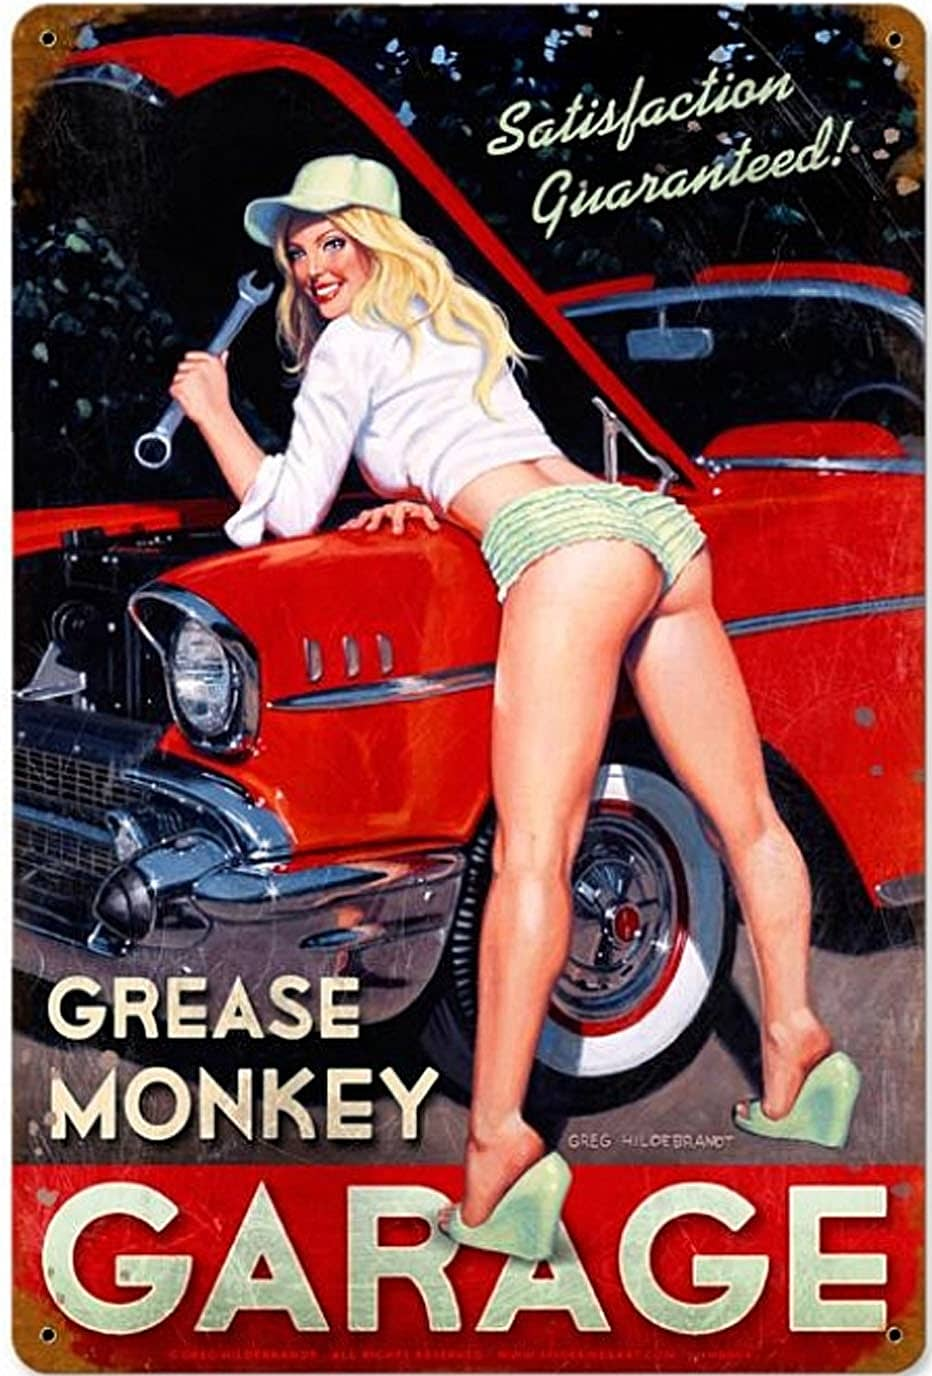 grease-monkey-garage-rusted-metal-sign-pst-1812-5428-p